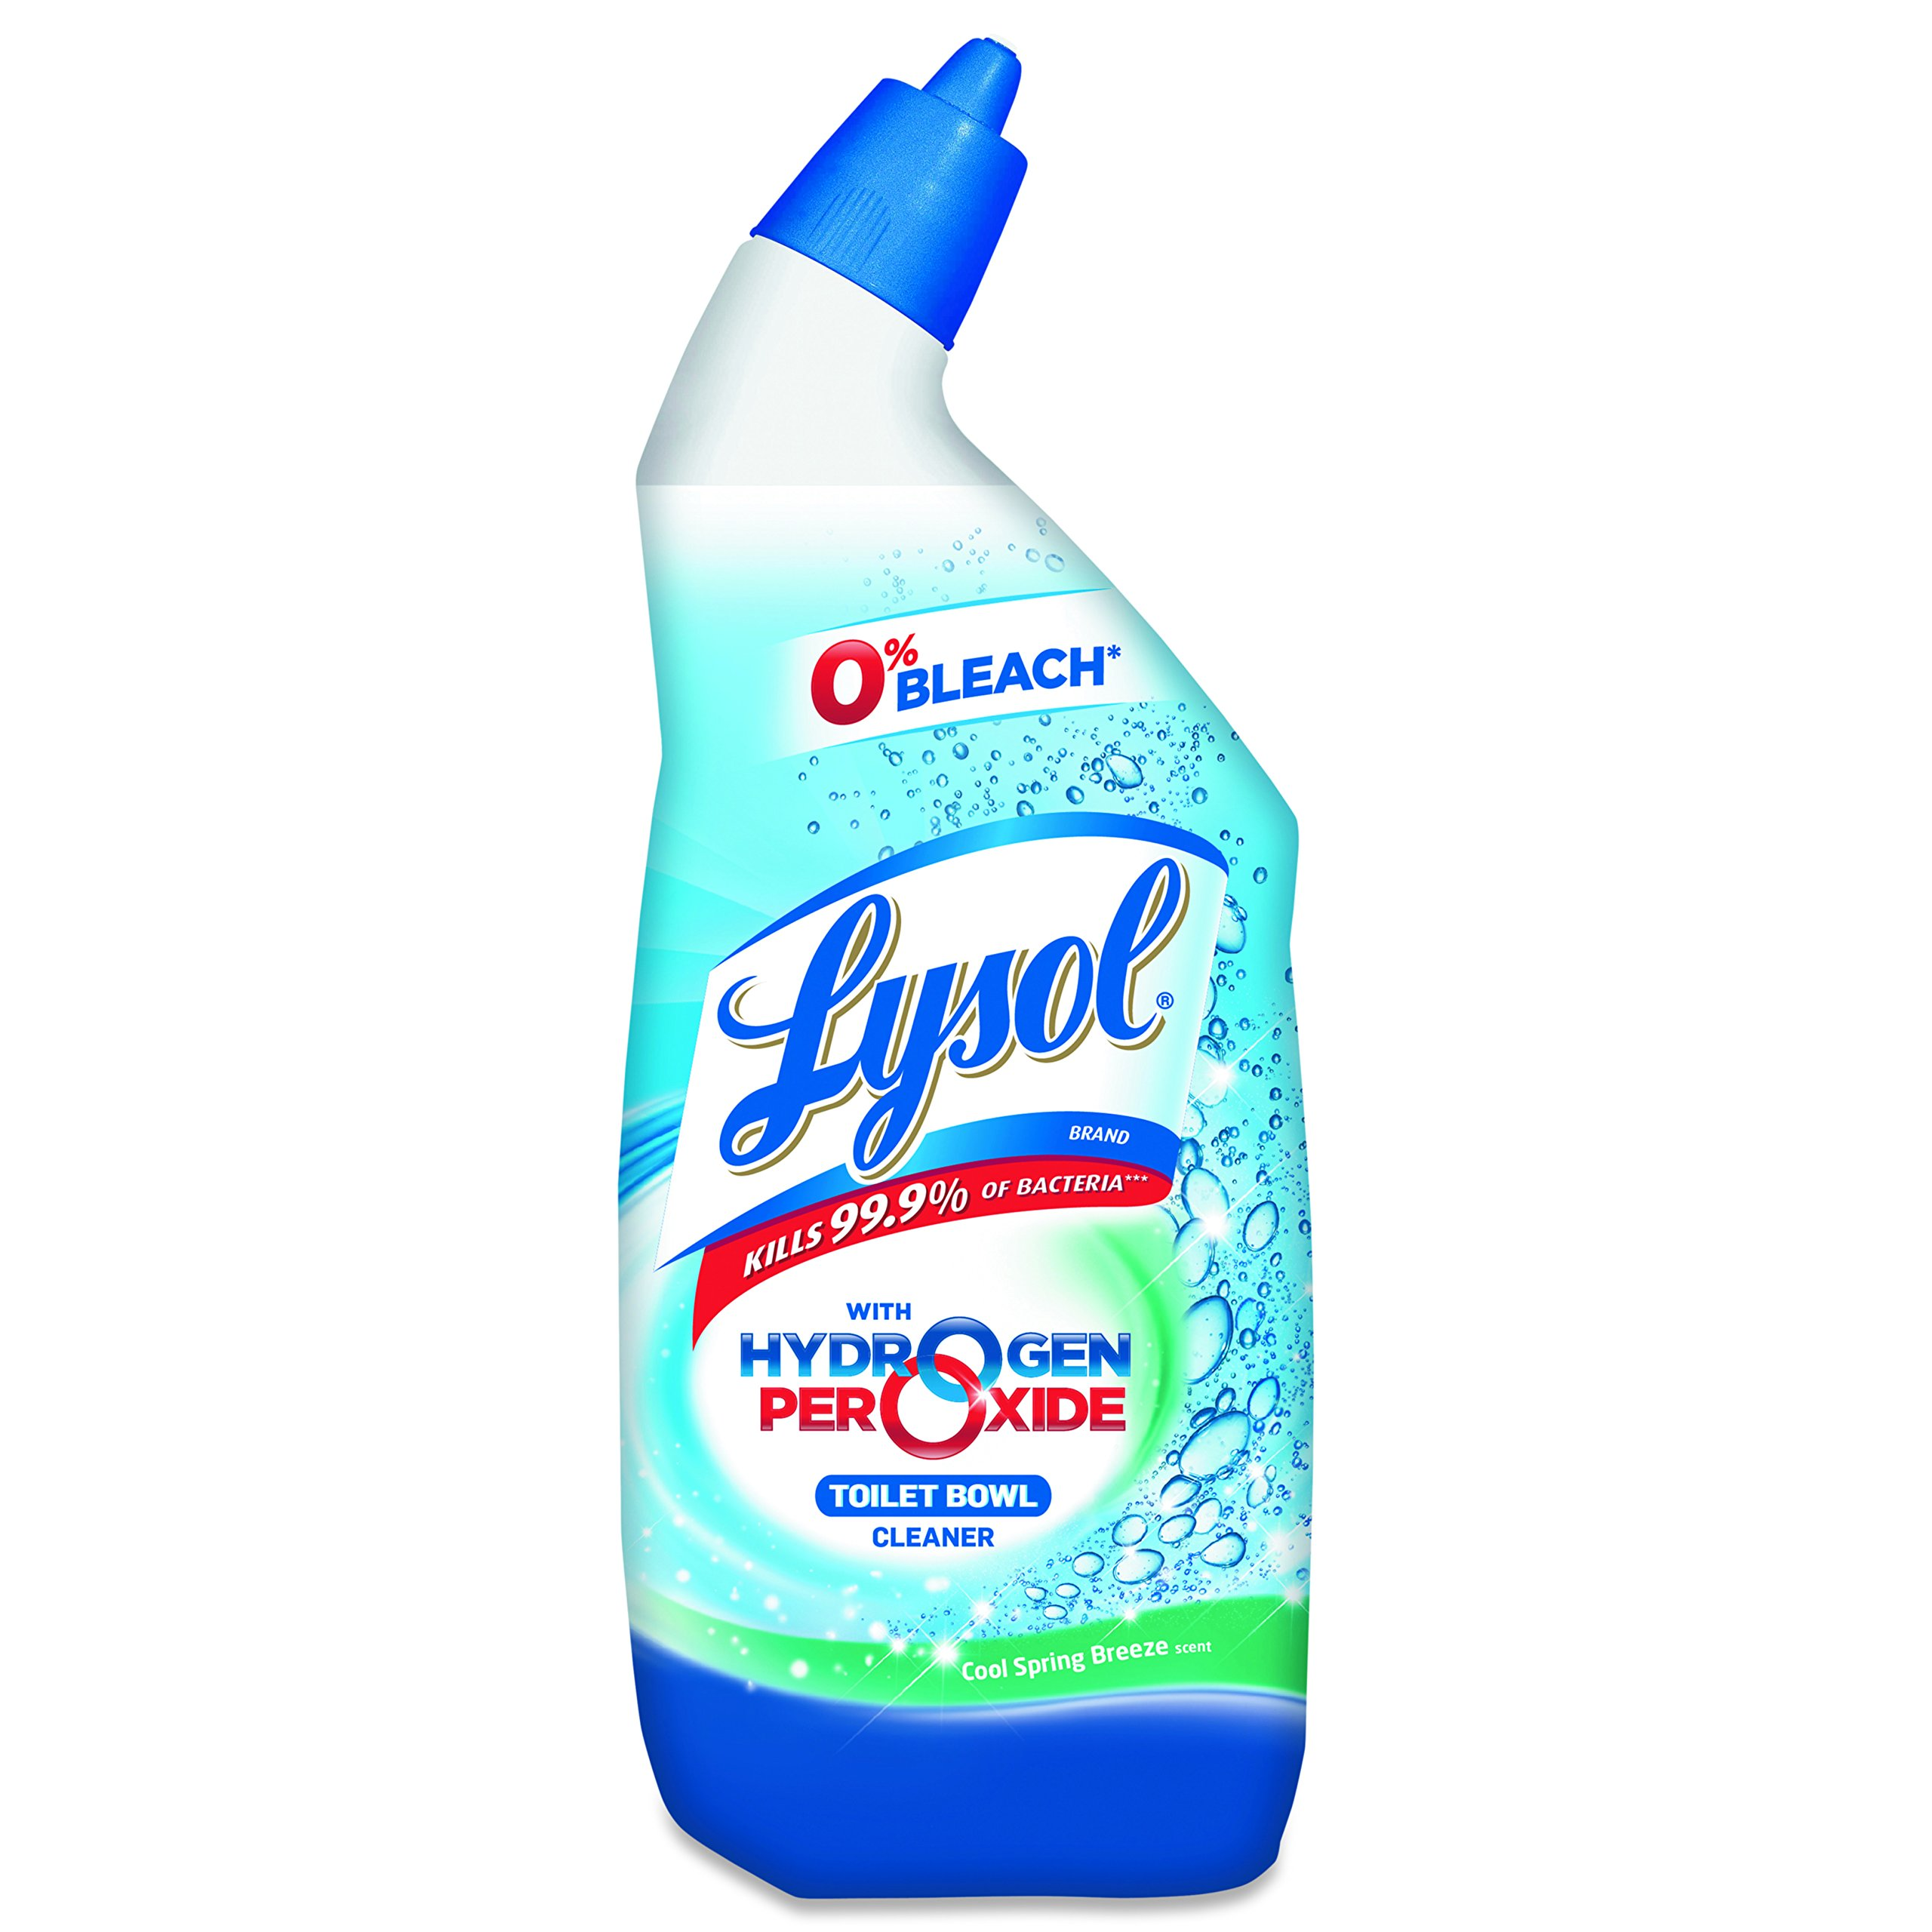 LYSOL Brand 85020CT Toilet Bowl Cleaner with Hydrogen Peroxide, 24oz Angle-Necked Bottle (Case of 12 Bottles)